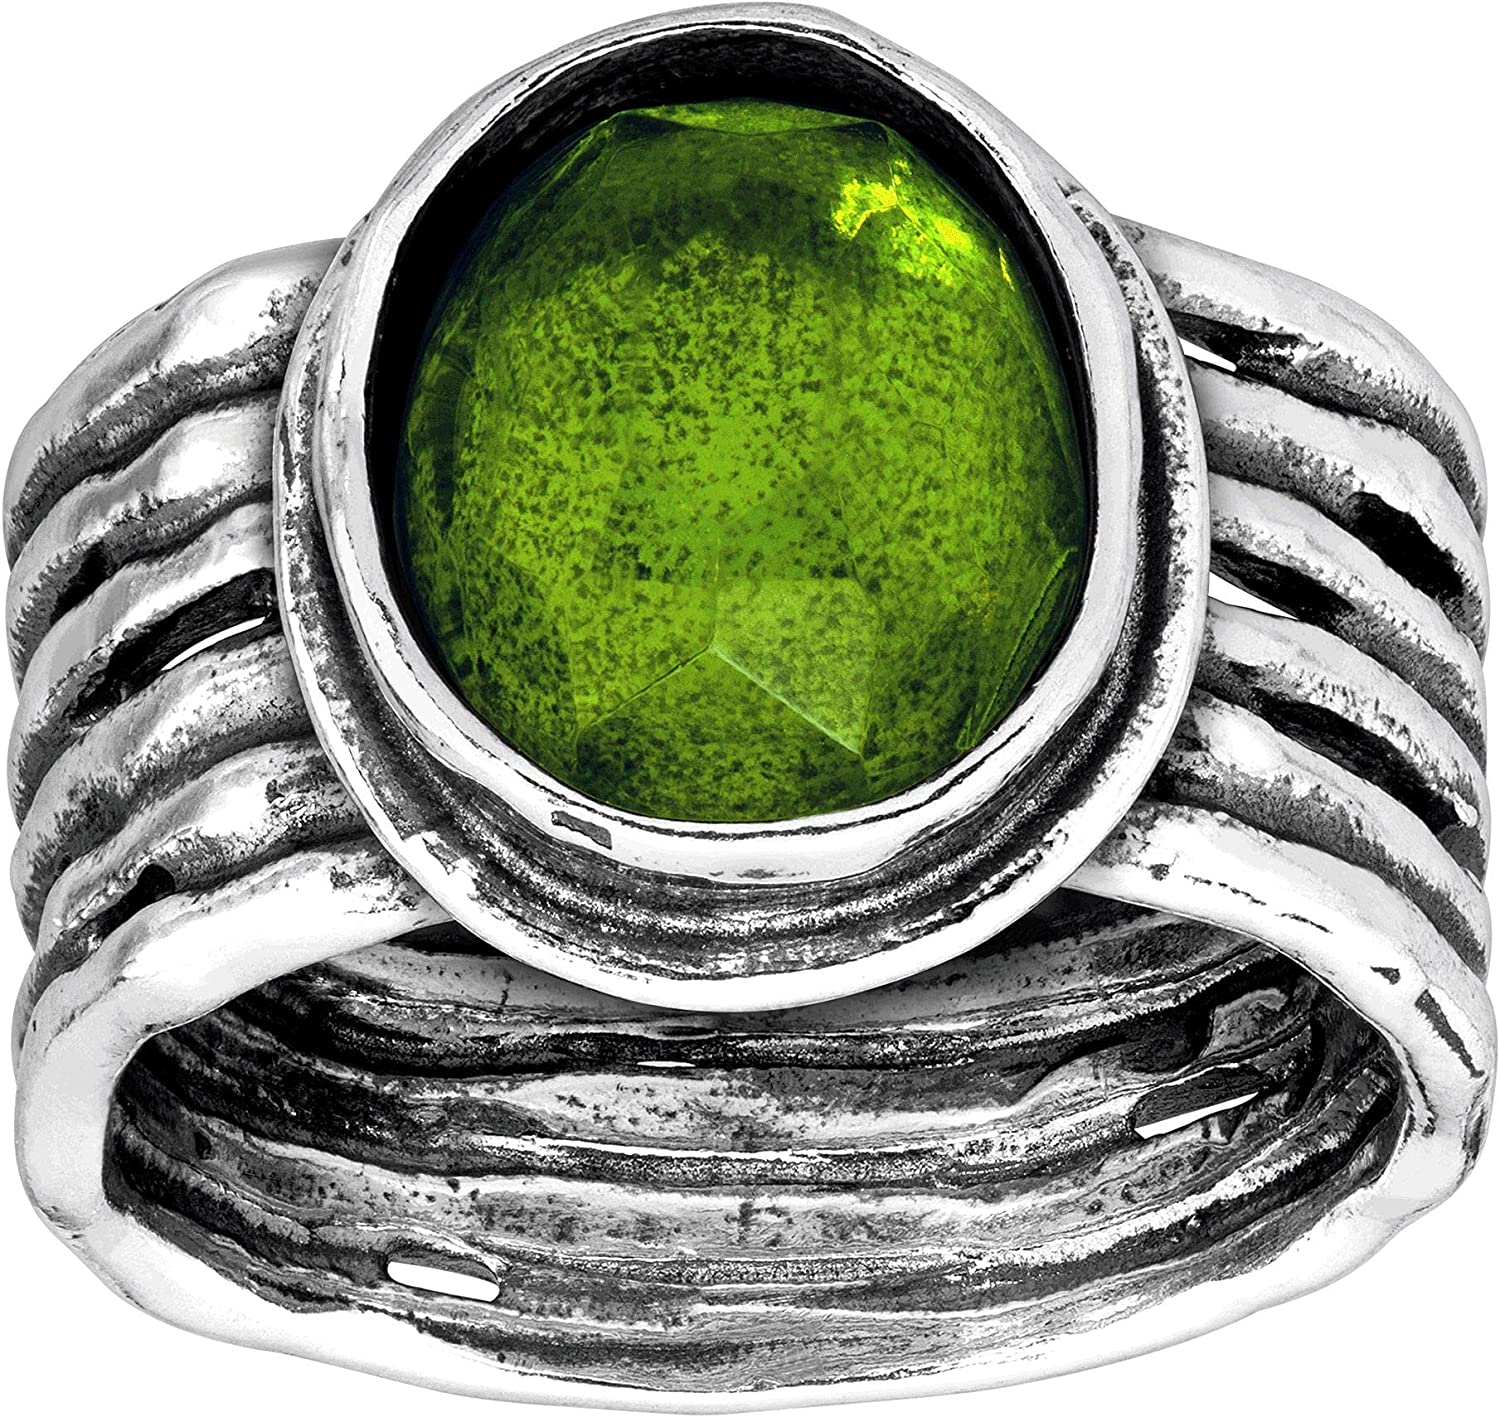 Silpada 'Daintree' Natural Free Shipping New Green Quartz Ring Ribbed Sterling in Fresno Mall